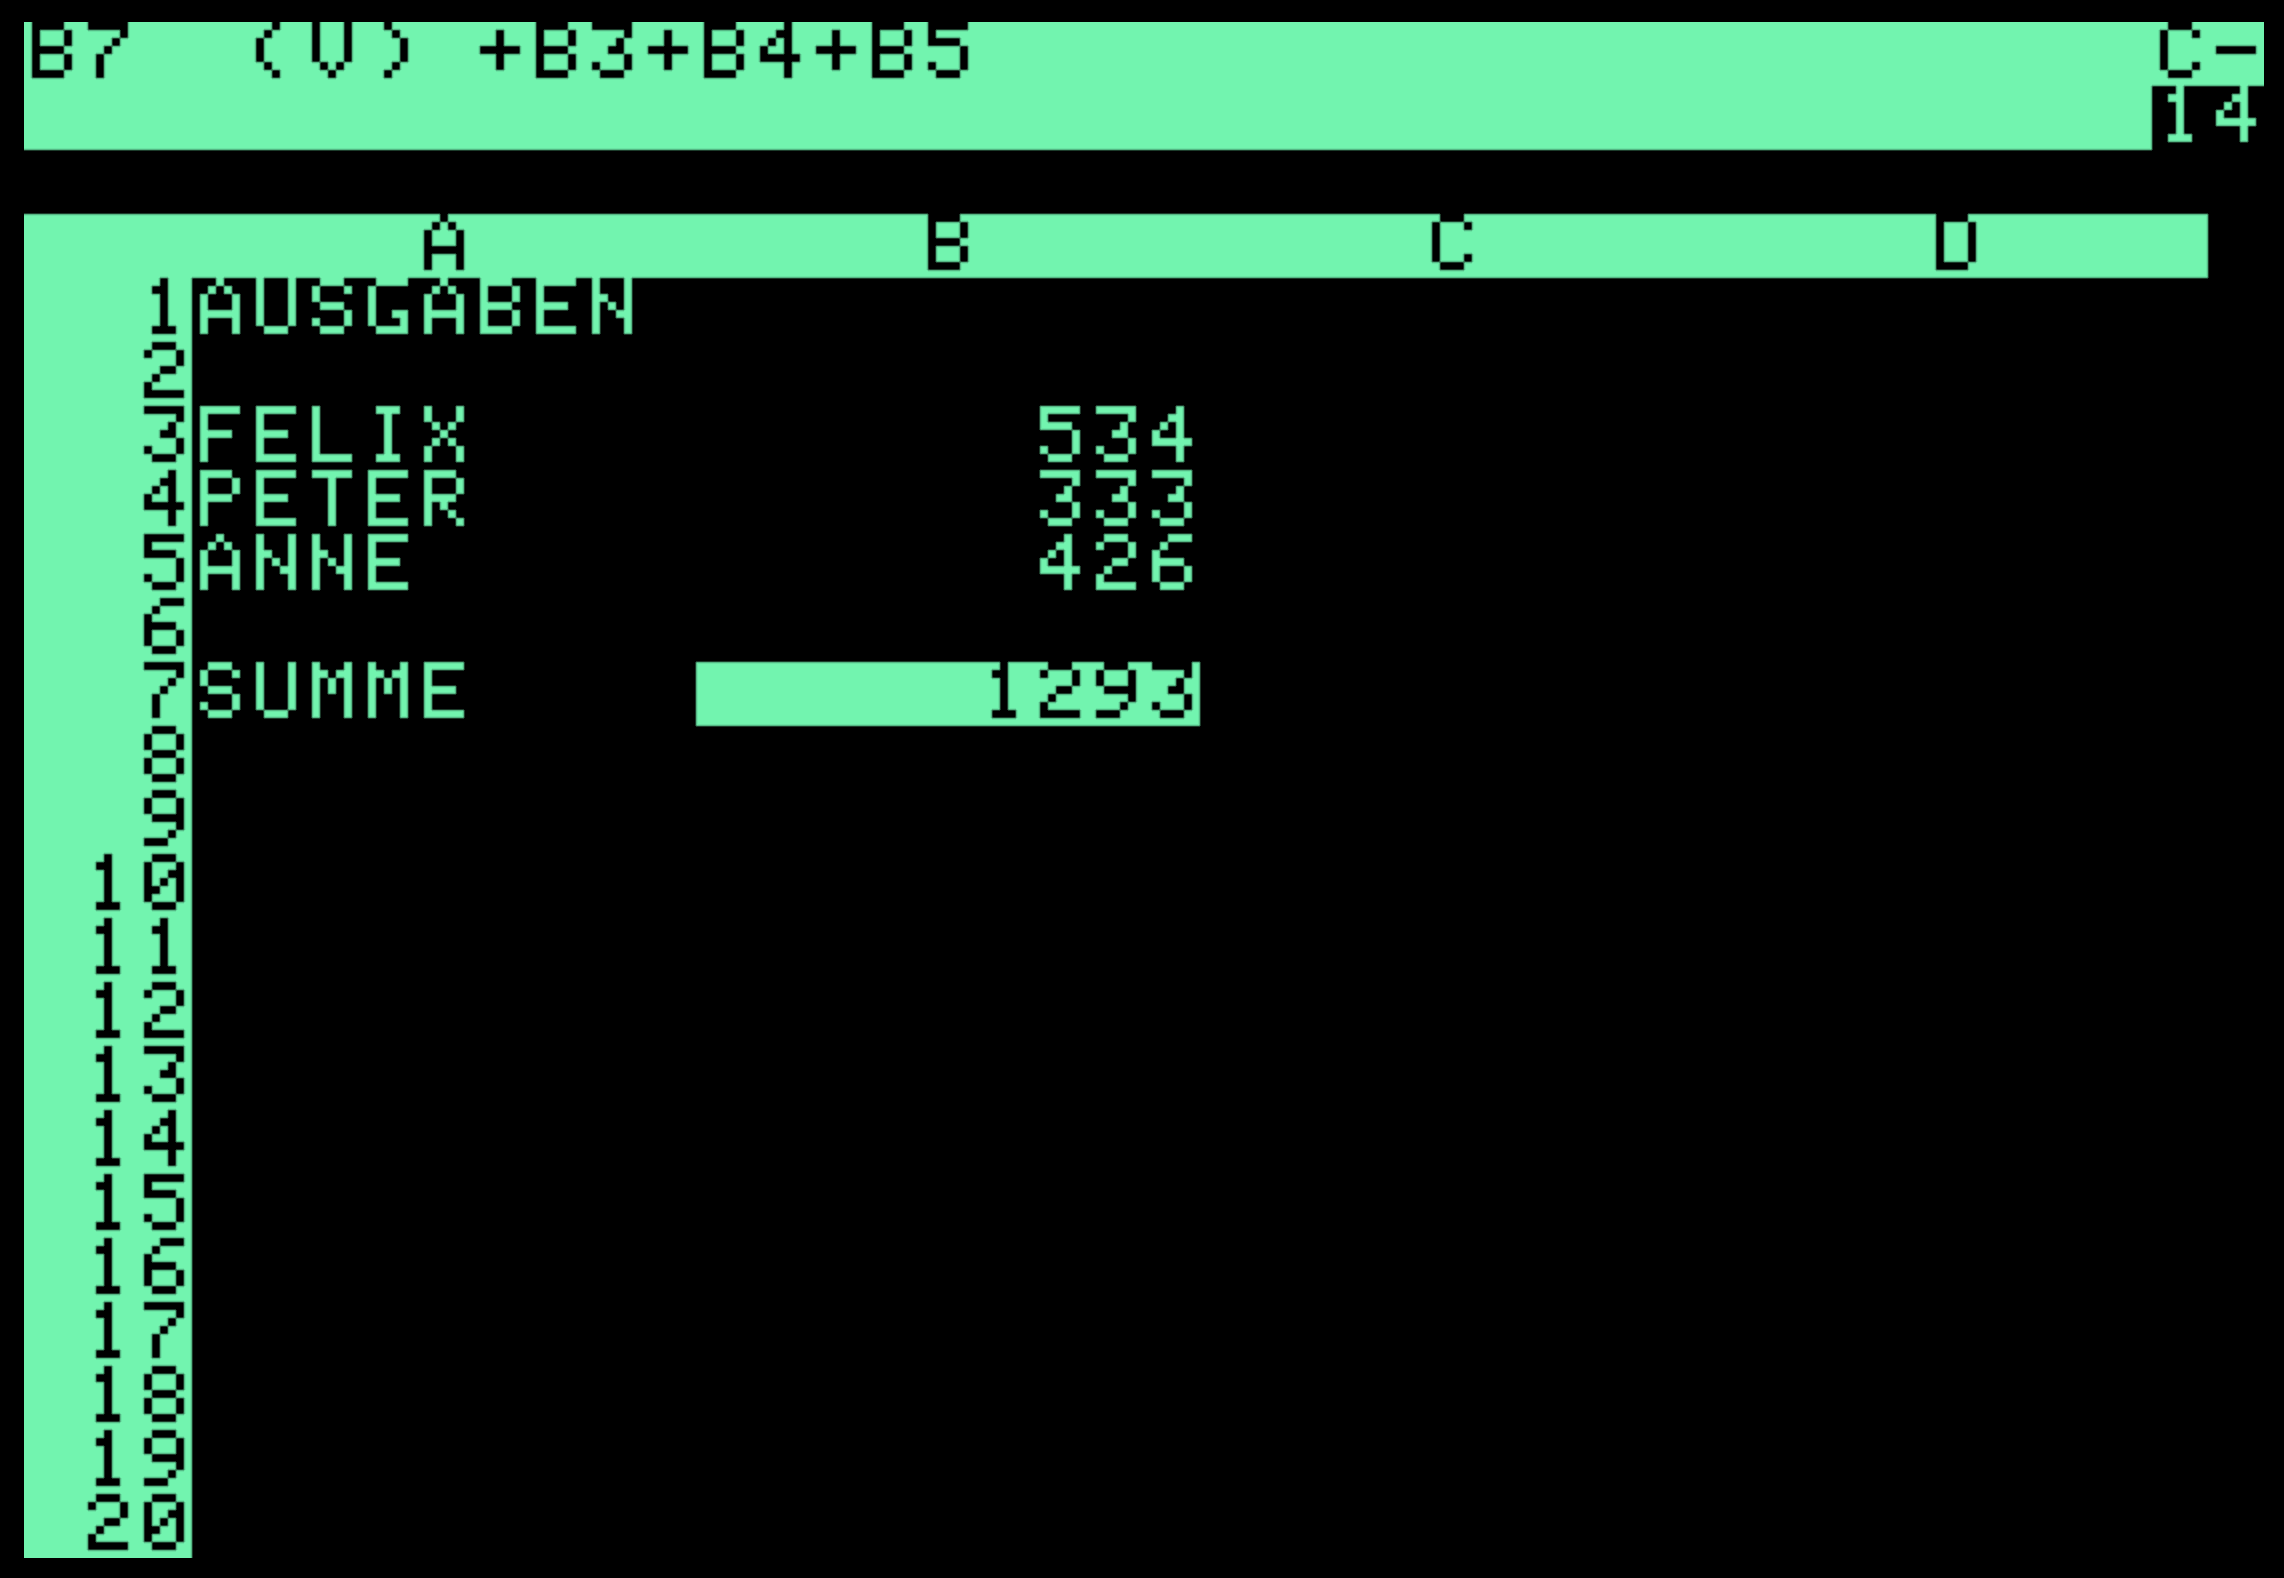 VisiCalc on the Apple II